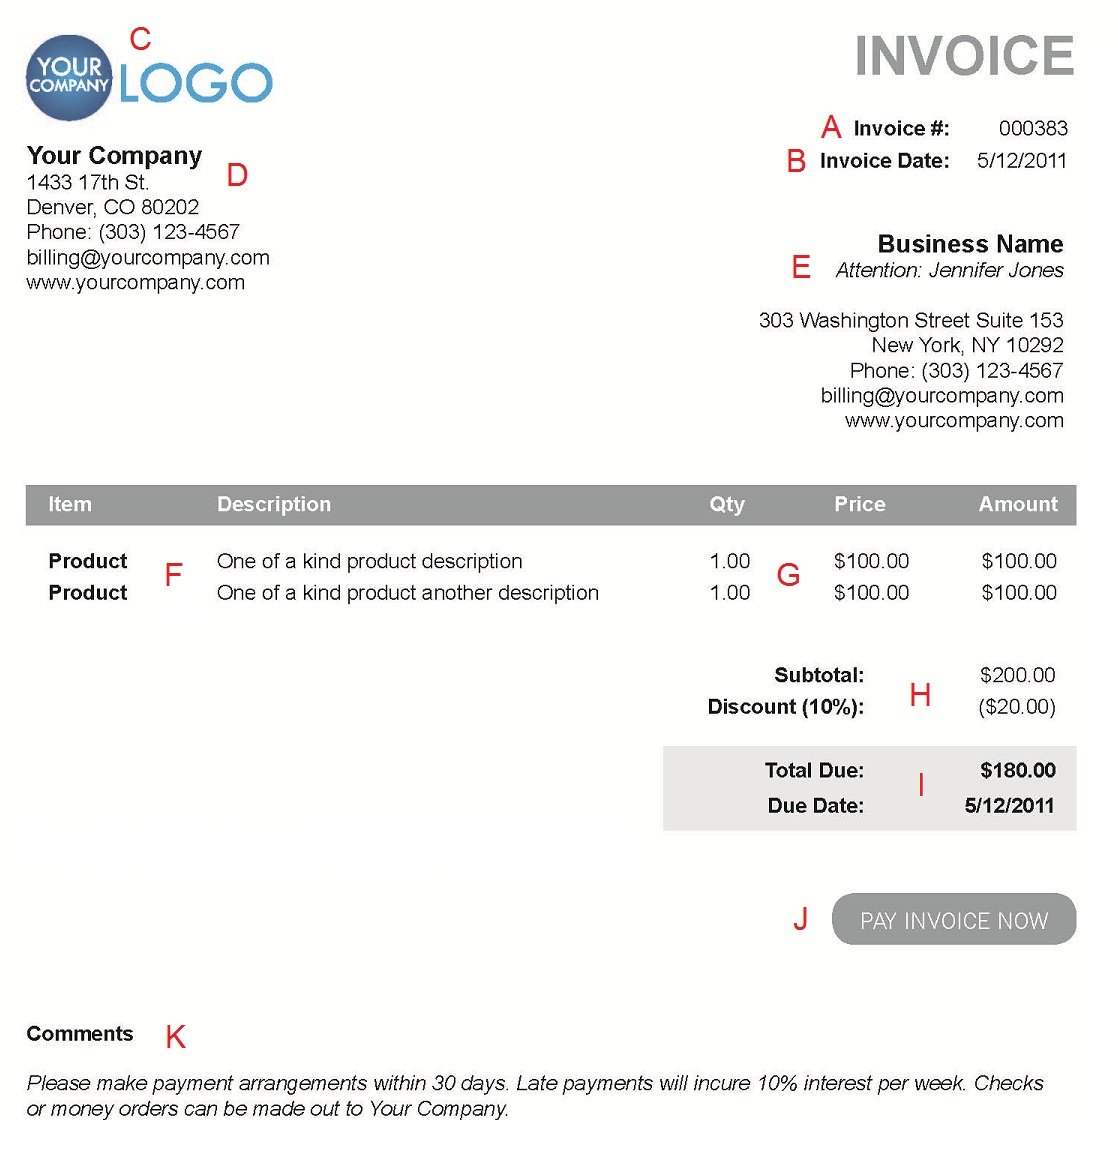 Atvingus  Pleasing The  Different Sections Of An Electronic Payment Invoice With Hot A  With Attractive To Receipt Also Lost My Post Office Receipt In Addition Receipts Accounting Definition And Word Receipt As Well As Shipping Receipt Template Additionally Clothes Receipt From Paysimplecom With Atvingus  Hot The  Different Sections Of An Electronic Payment Invoice With Attractive A  And Pleasing To Receipt Also Lost My Post Office Receipt In Addition Receipts Accounting Definition From Paysimplecom